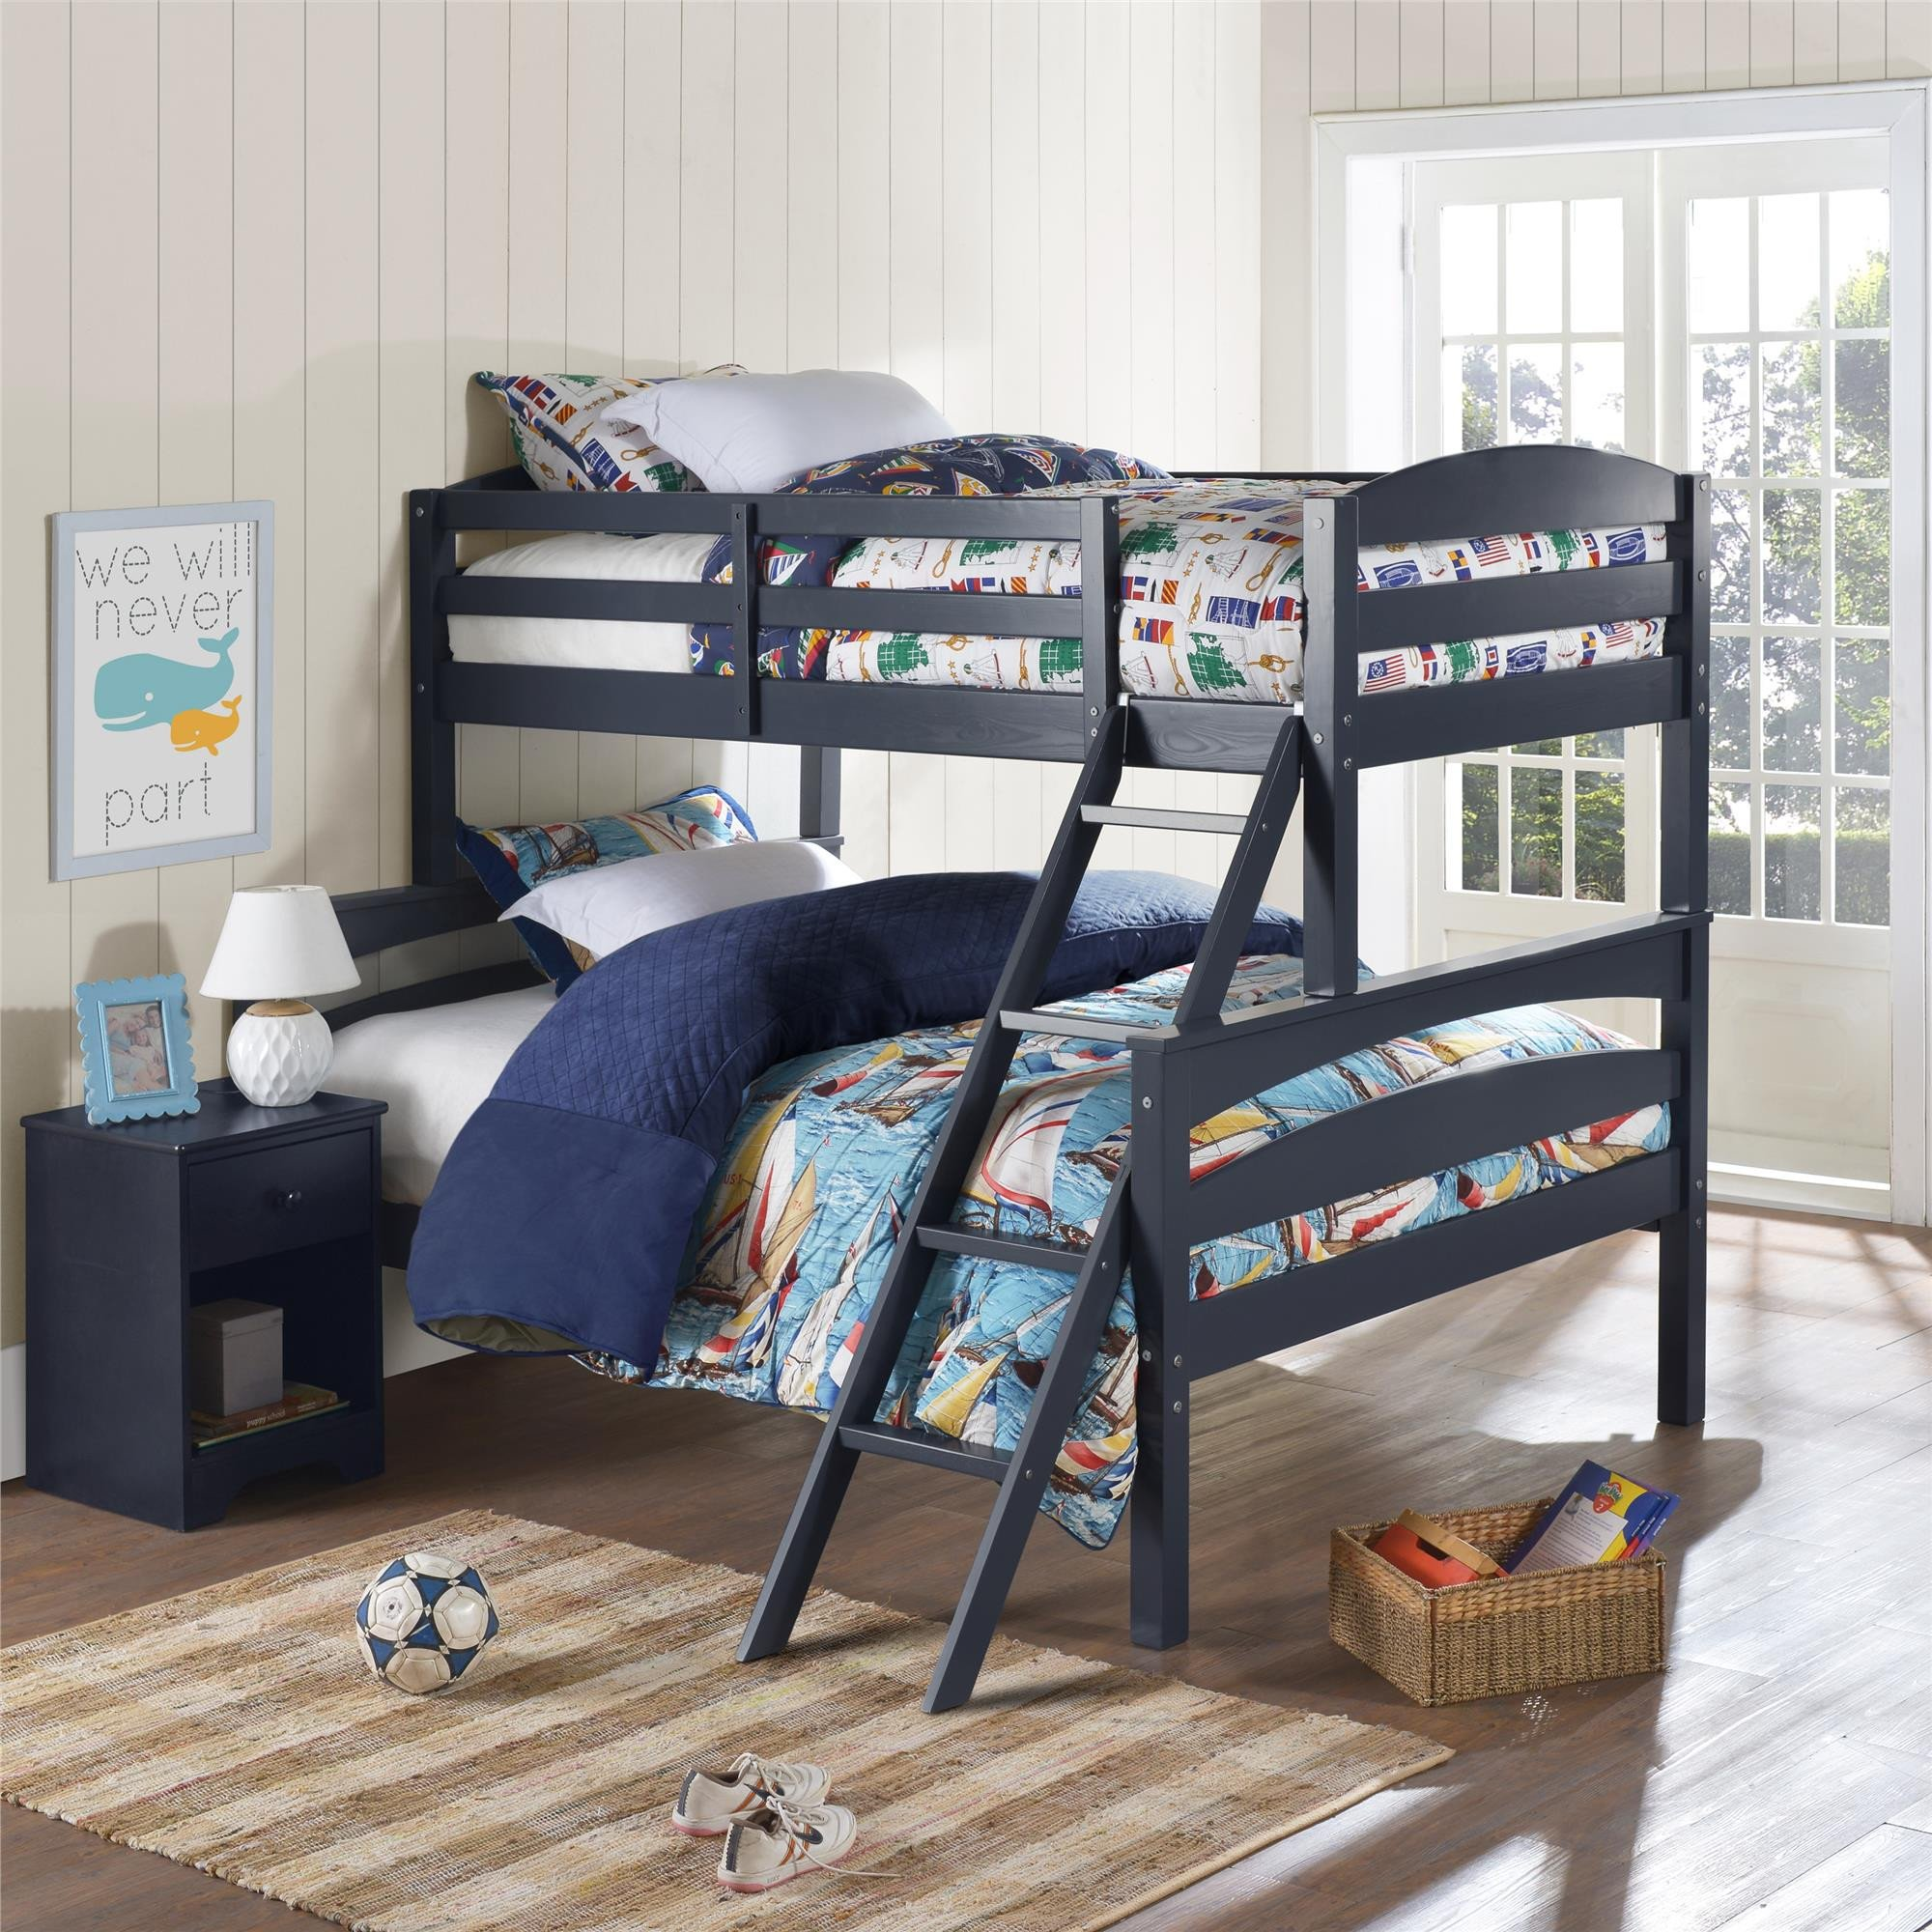 Sears Furniture Bedroom Set New Unique Bunk Bed Sets with Dresser — Beautiful